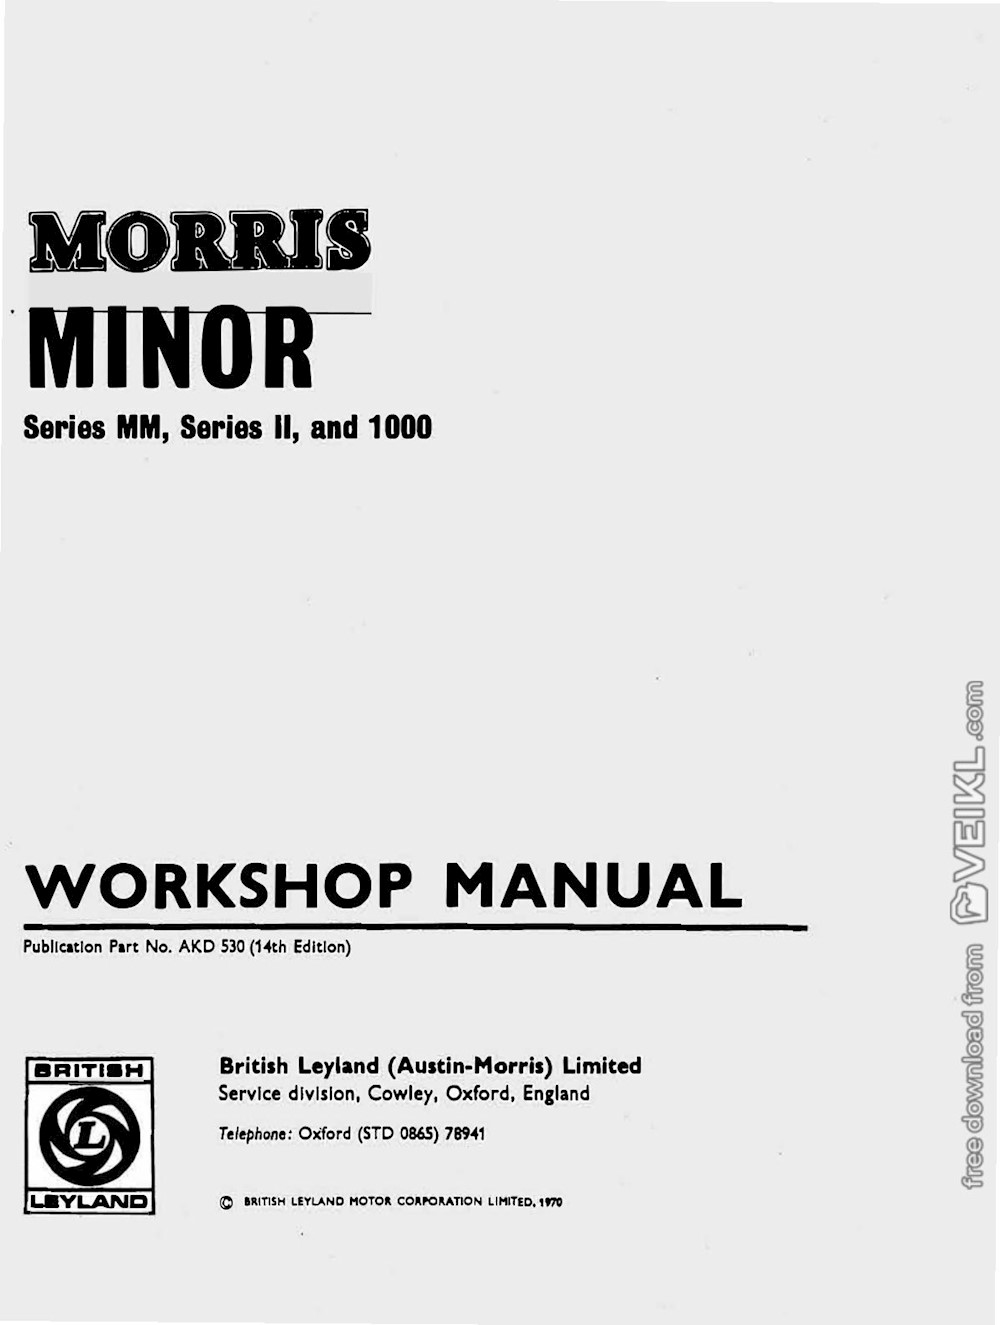 Morris Minor Series MM, Series Il, and 1000 Workshop Manual 1970 EN